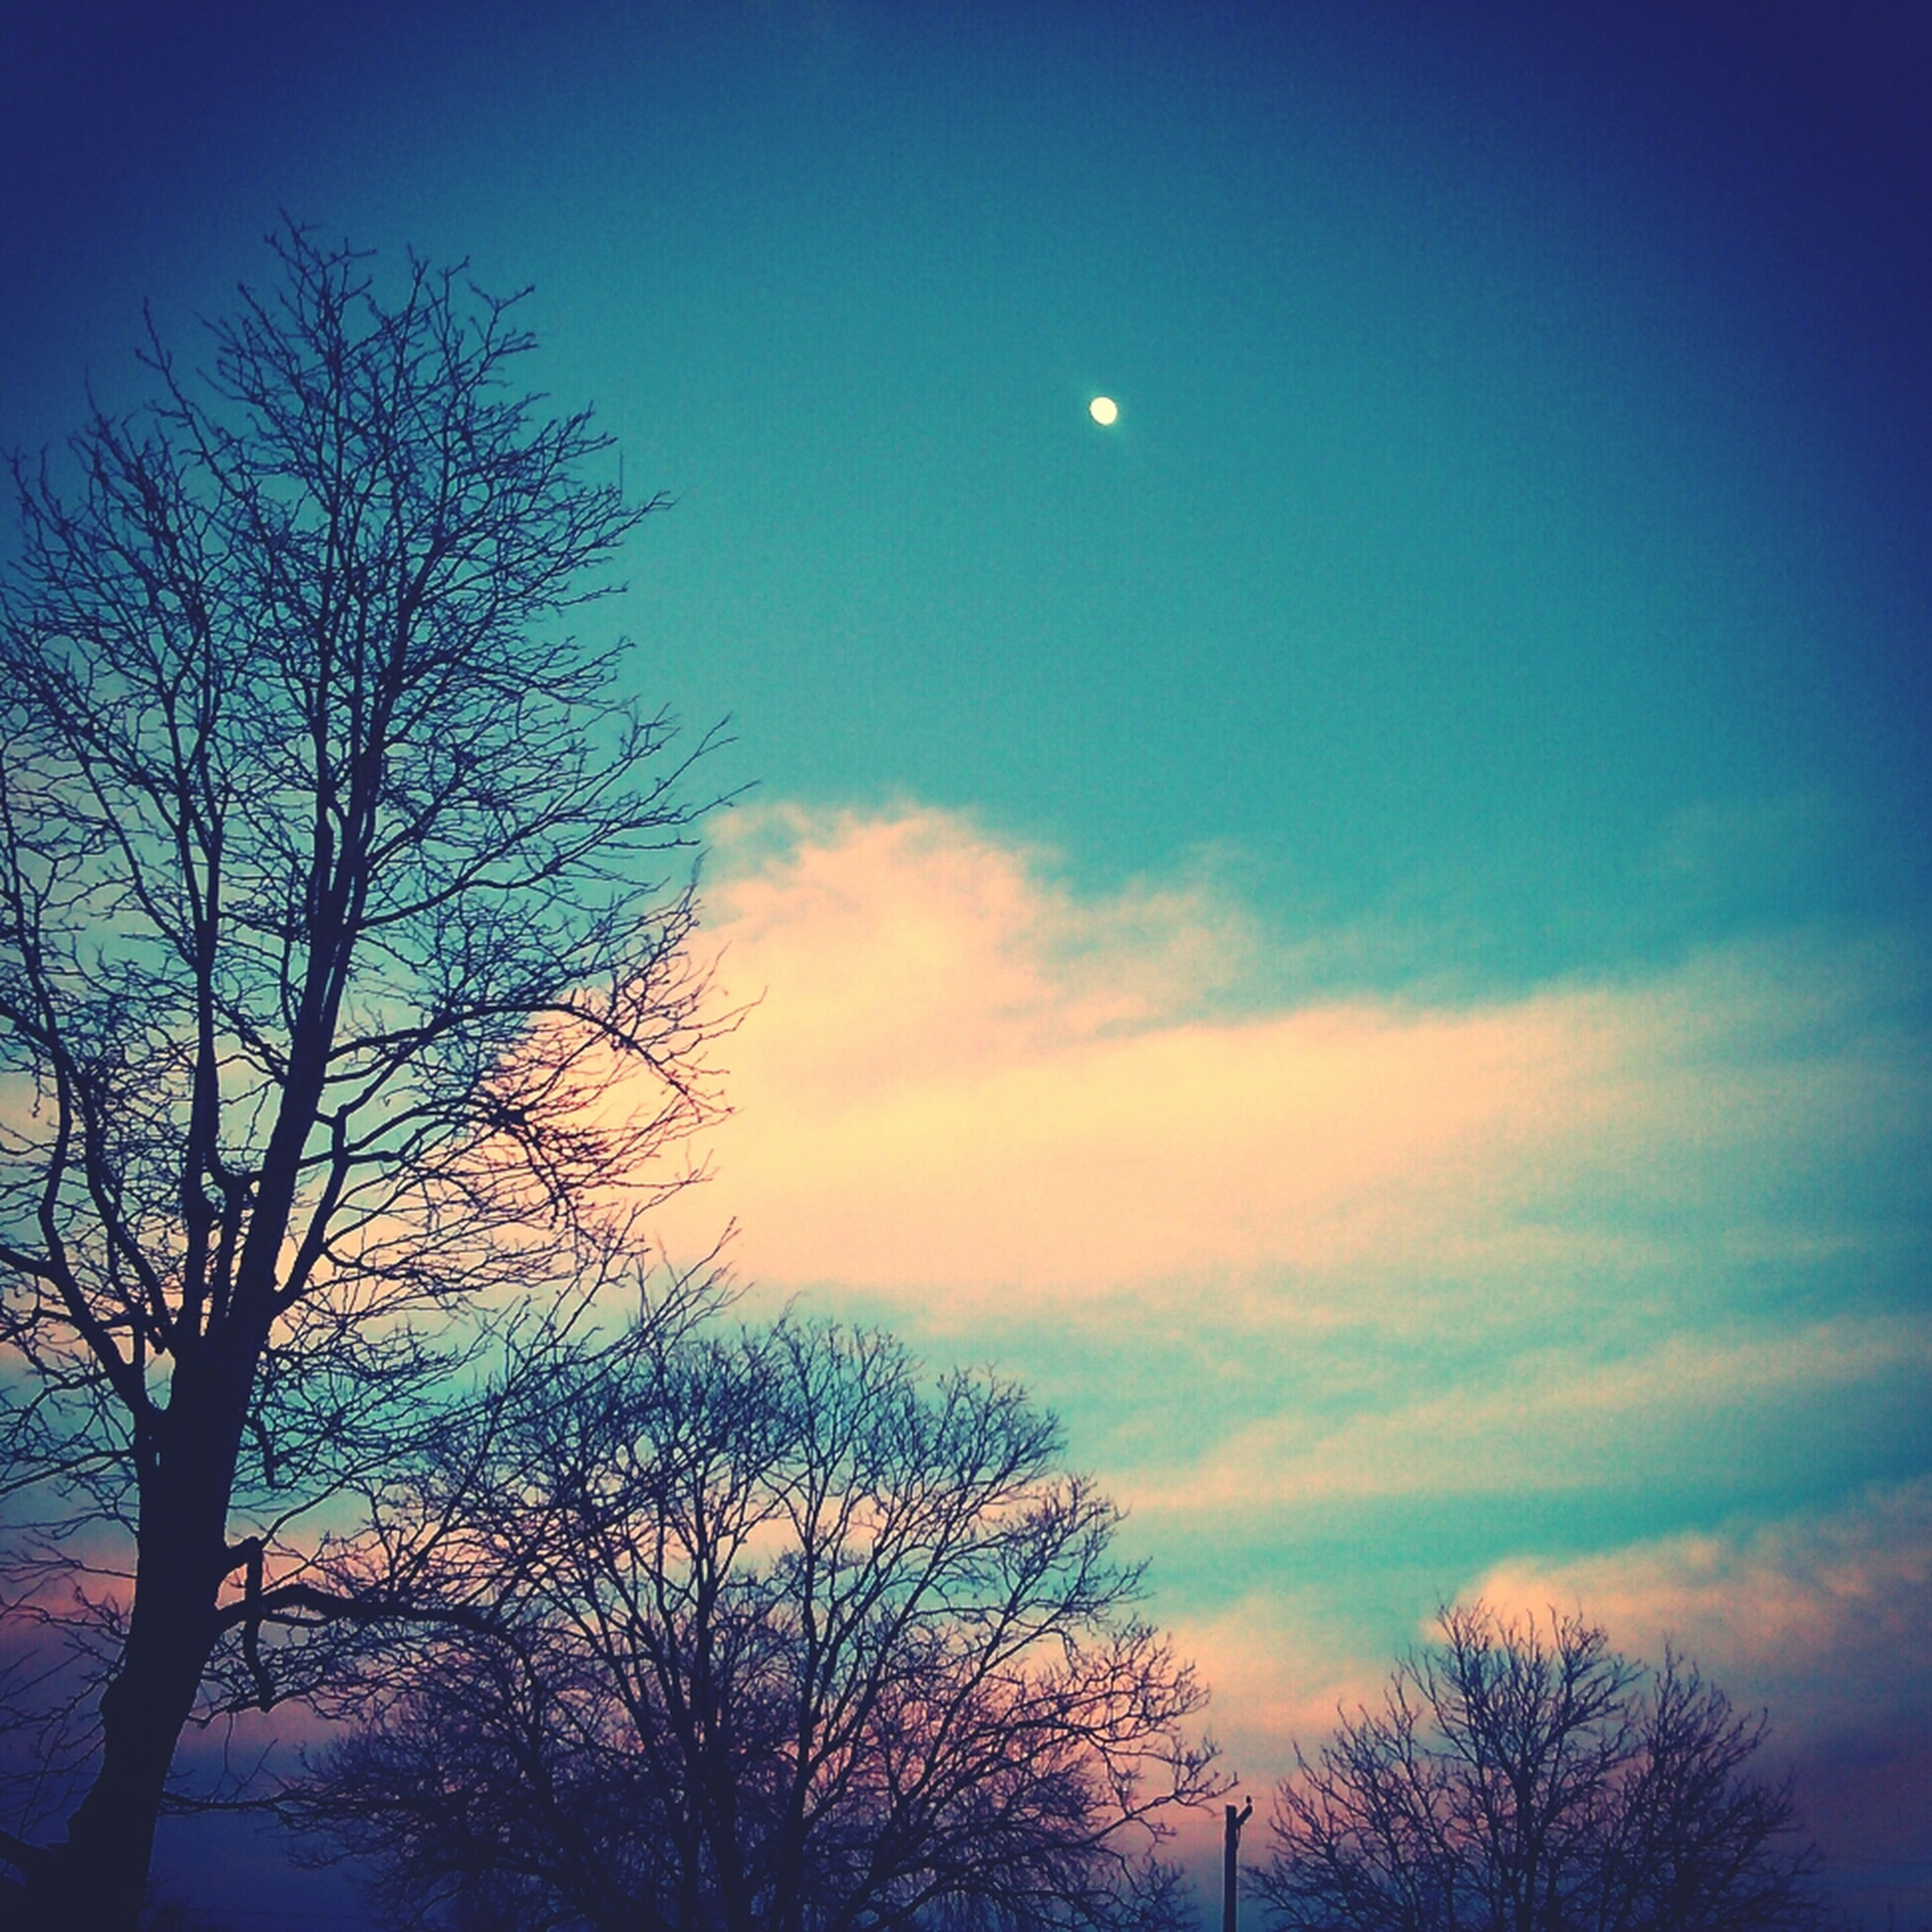 silhouette, bare tree, tree, sunset, sky, tranquility, beauty in nature, low angle view, scenics, tranquil scene, branch, nature, dusk, blue, idyllic, cloud - sky, moon, outdoors, majestic, no people